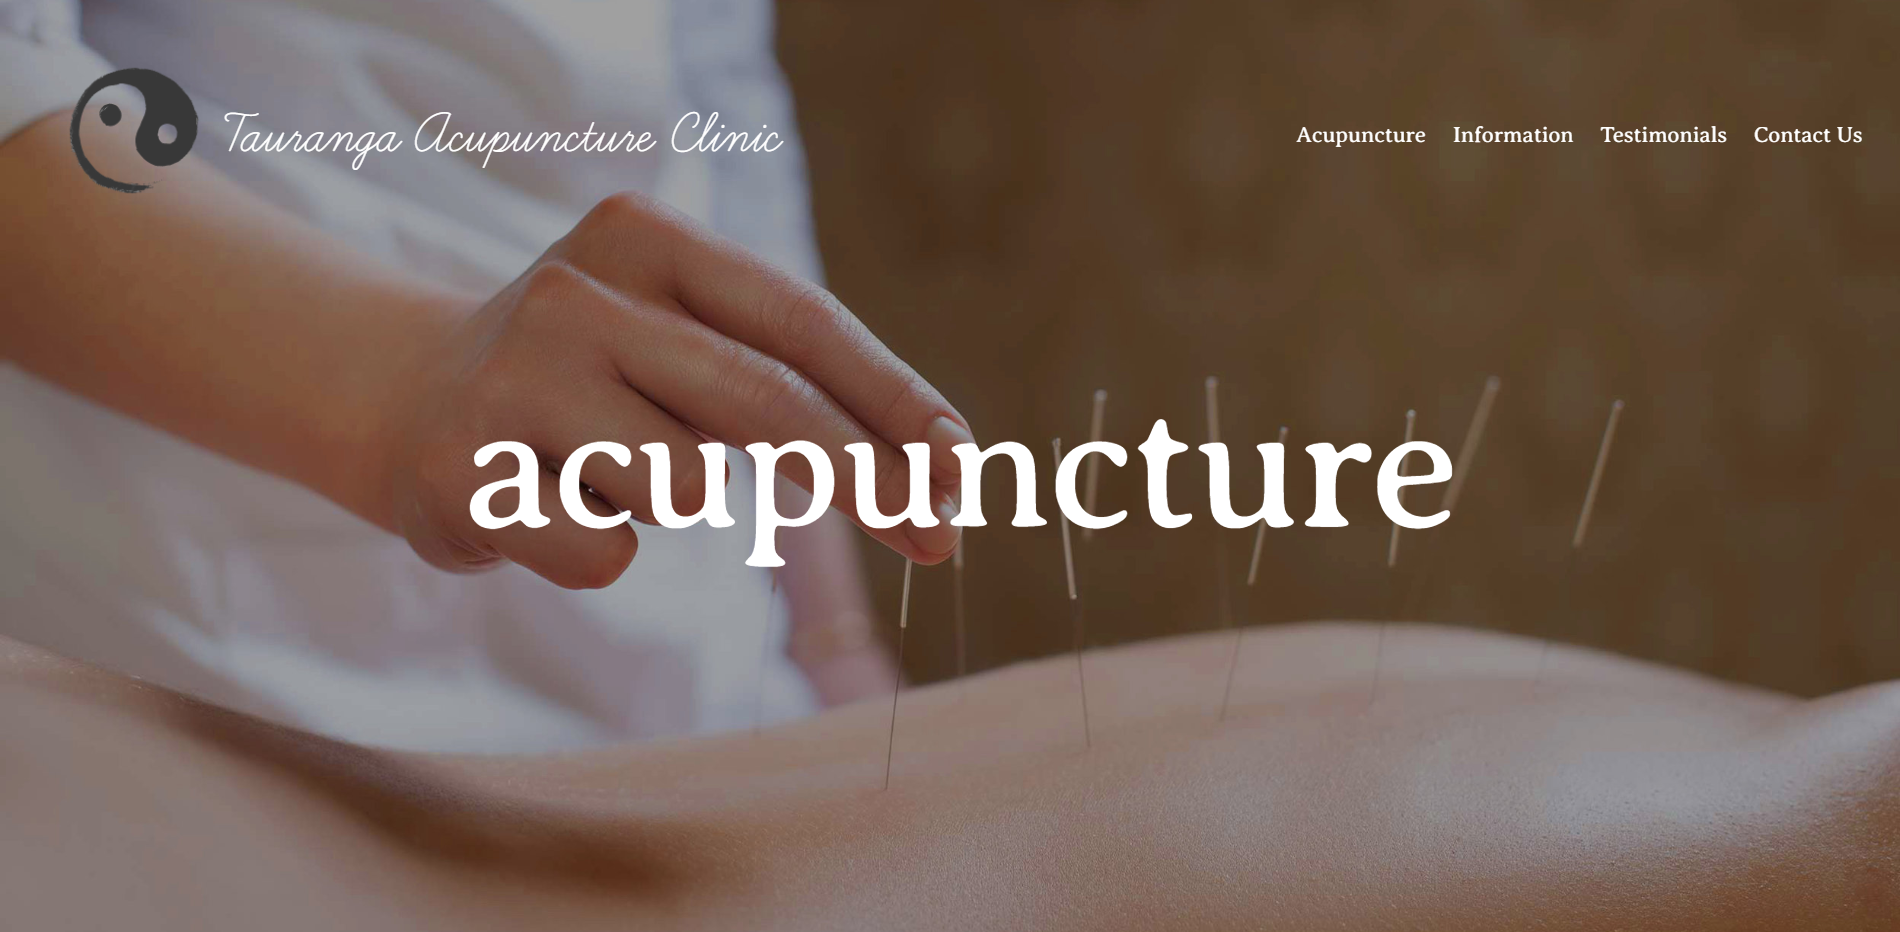 Tauranga Acupuncture Clinic - We have recently been working on a lovely updated site for Tauranga Acupuncture Clinic.